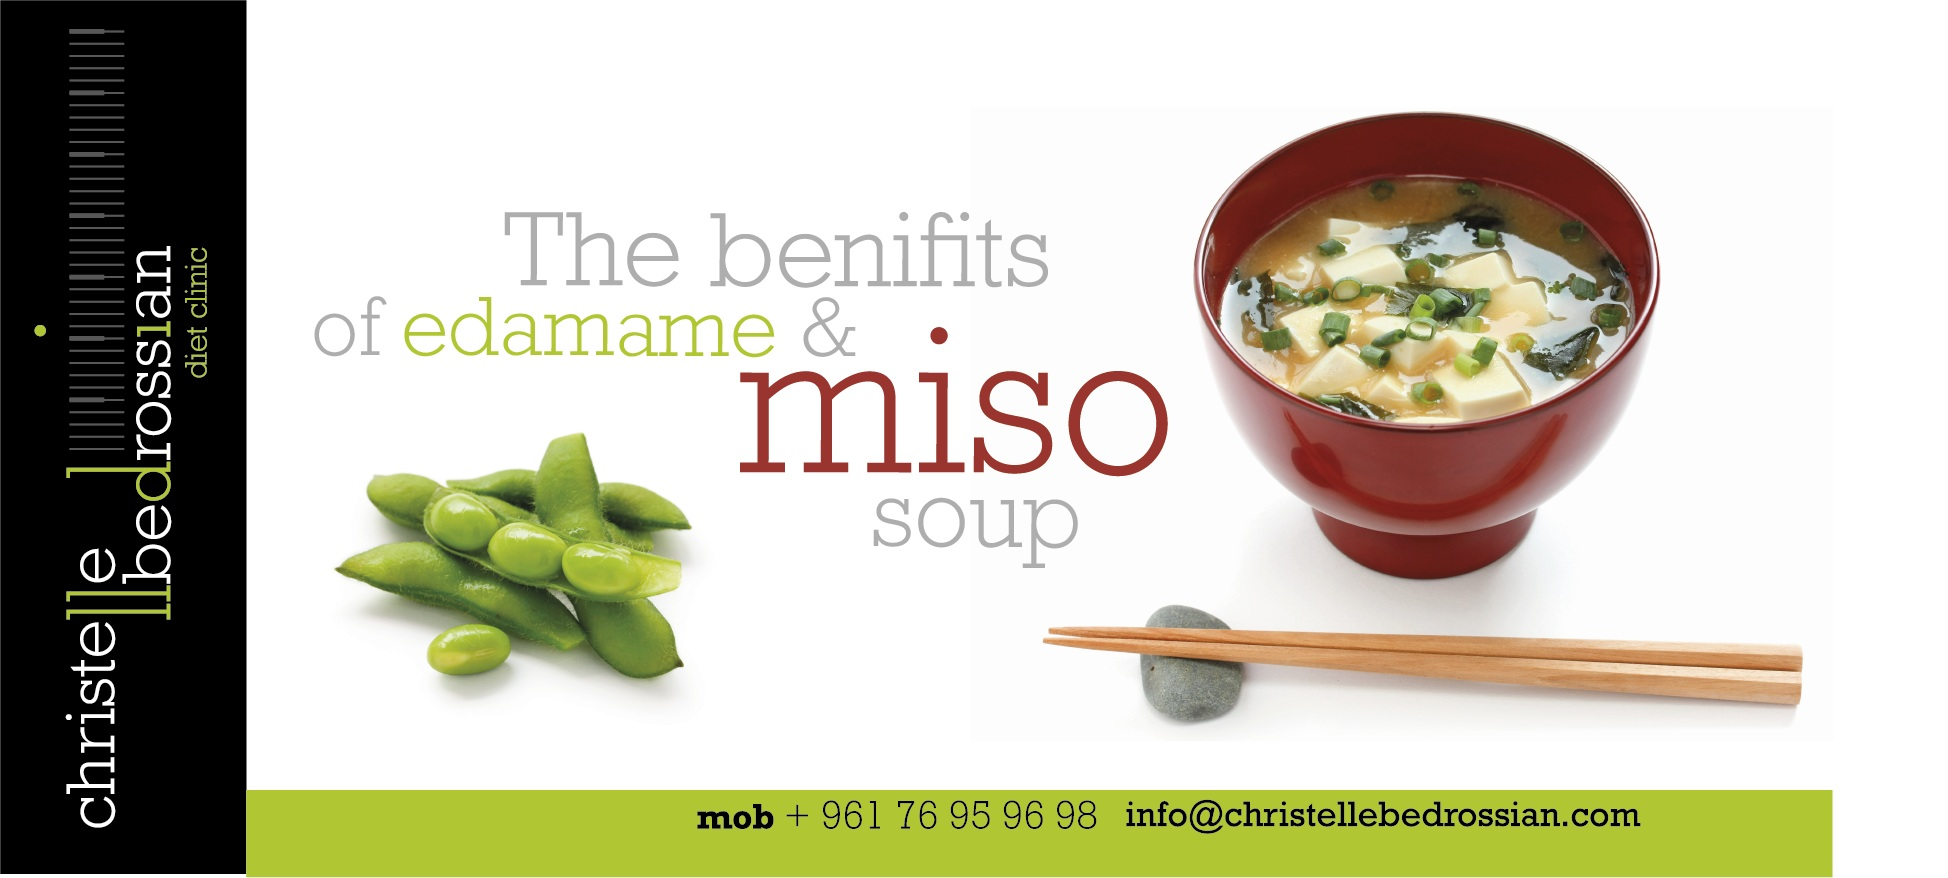 best dietitian lebanon, lebanon, diet, diet clinic, lose weight lebanon, health, miso soup , edamame